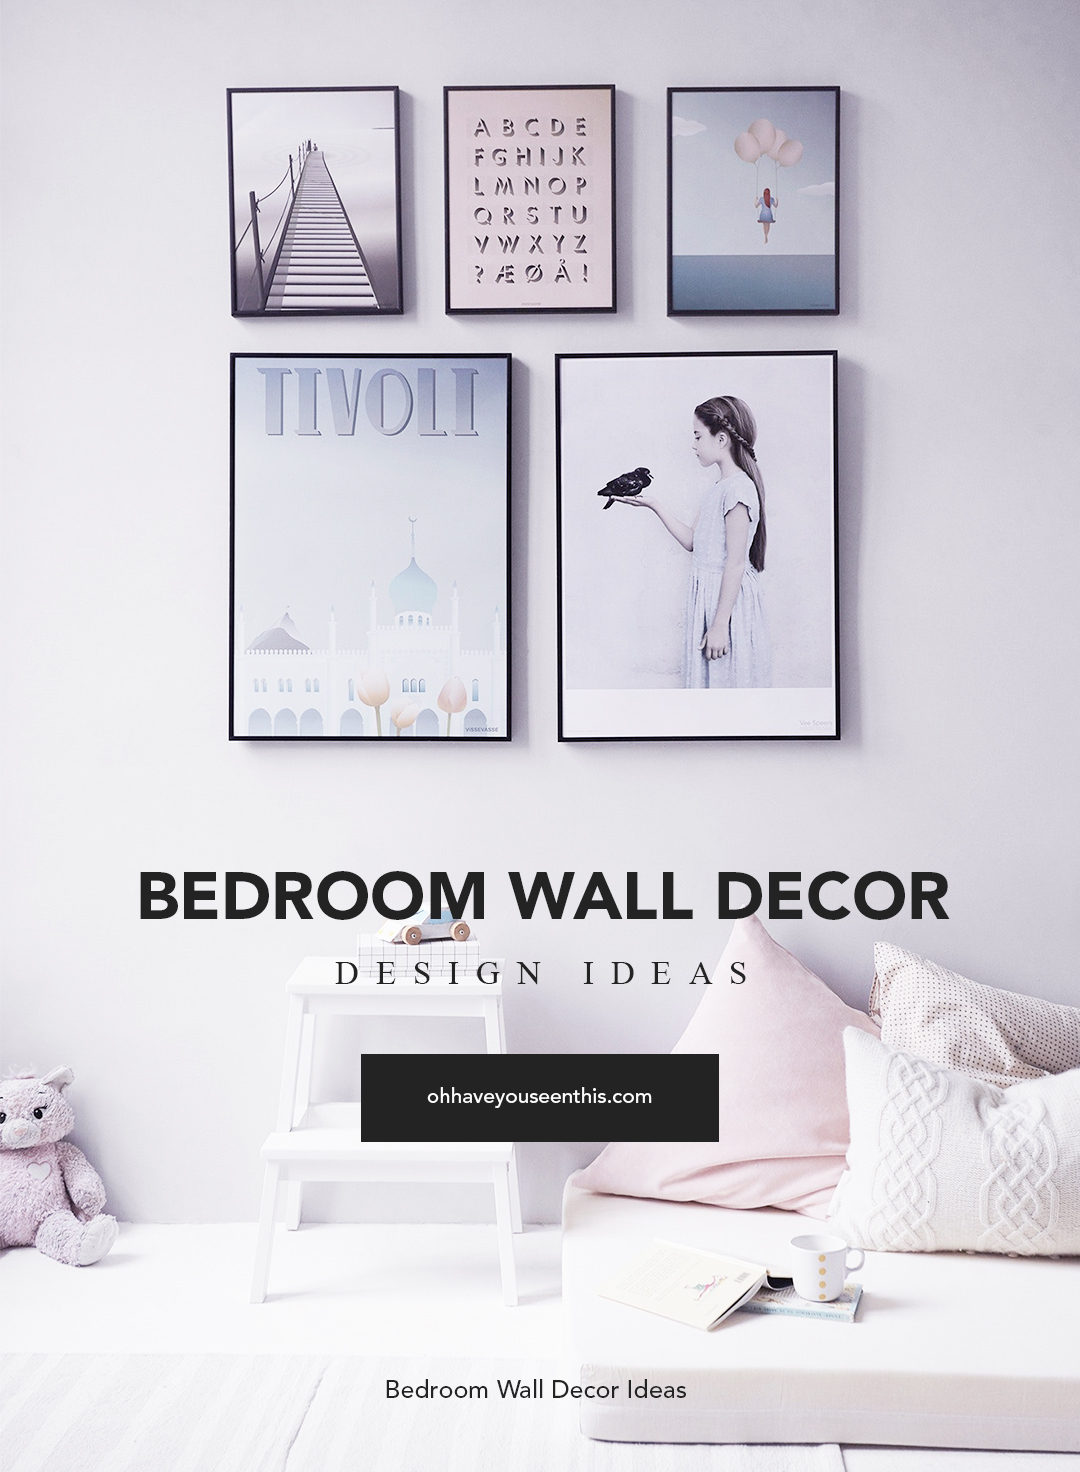 Bedroom Wall Decor Design Ideas